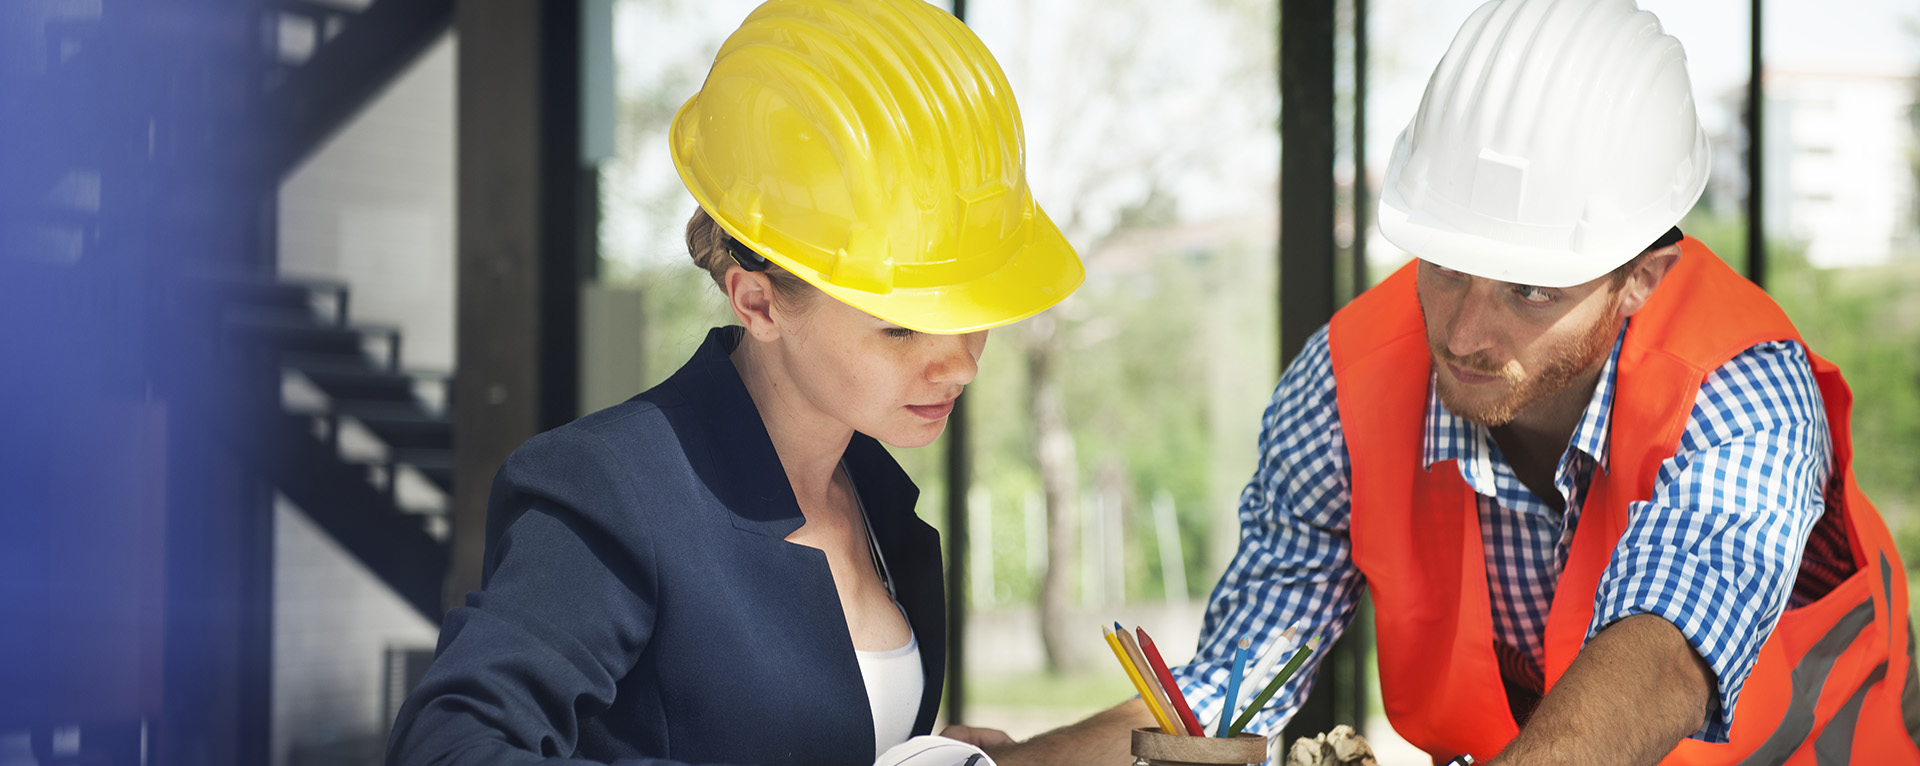 Women In Construction: Valuable and Good for the Bottom Line